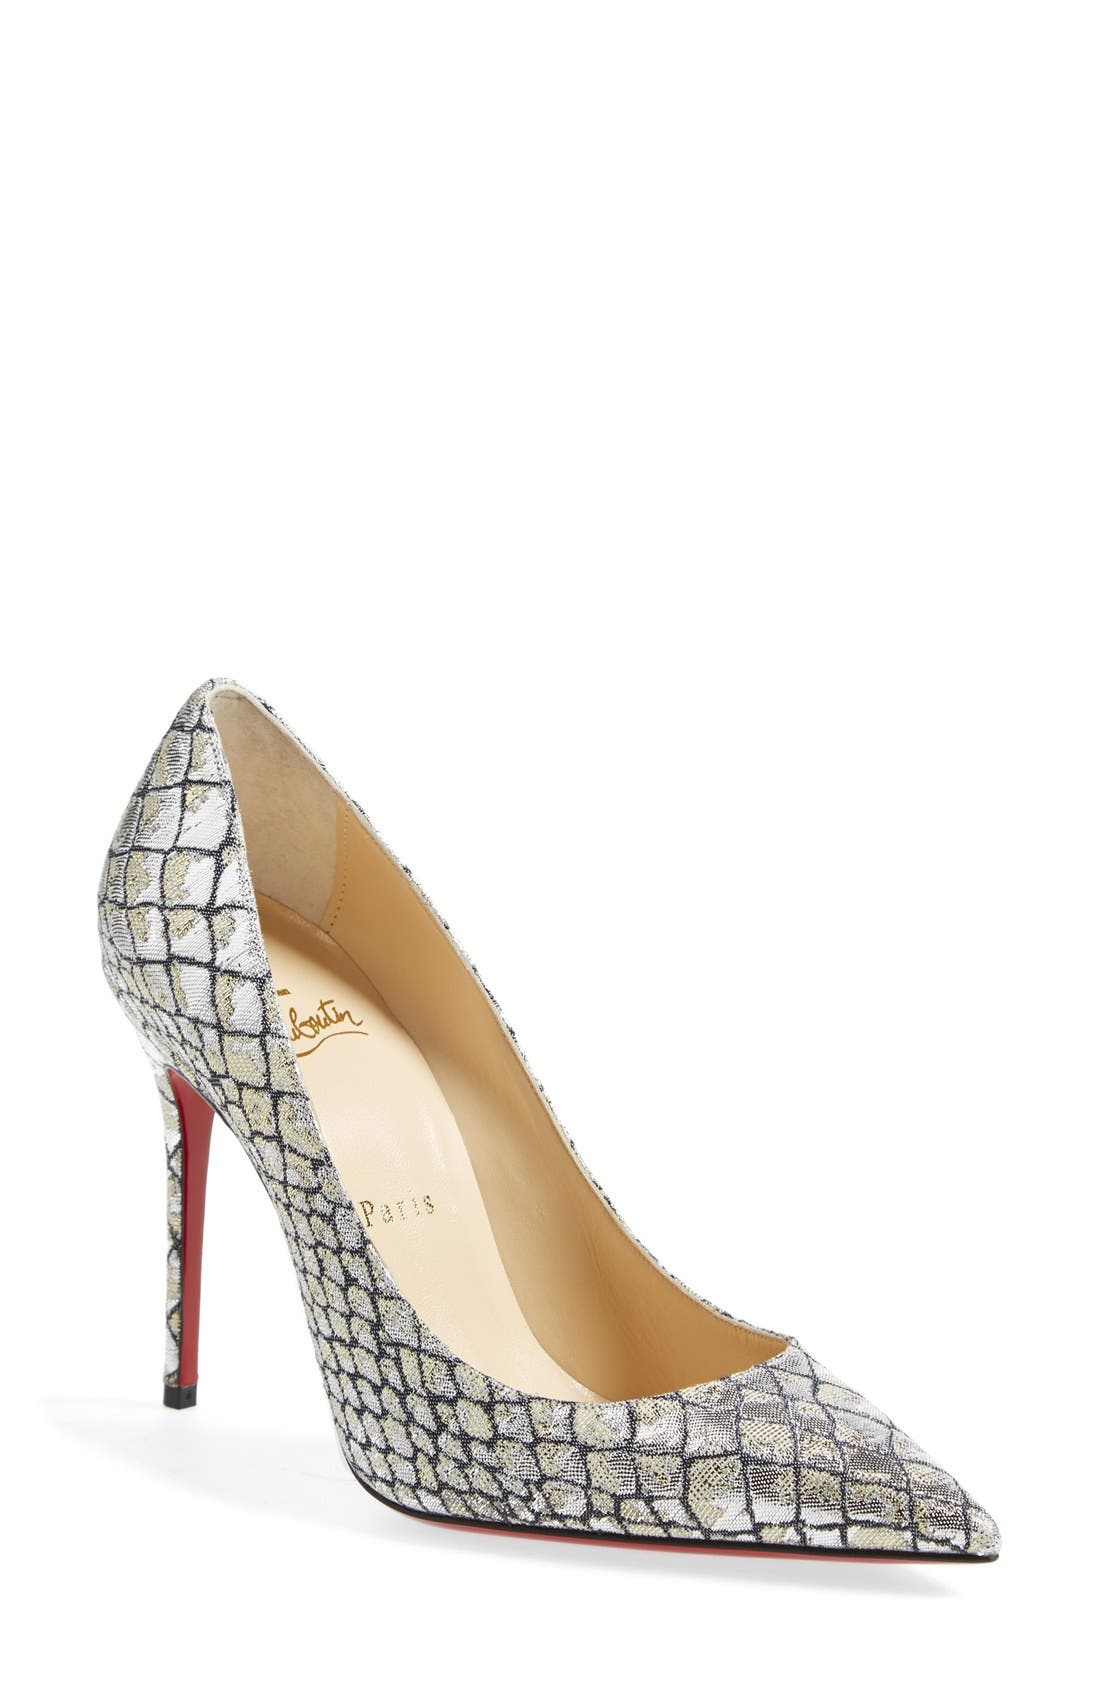 Alternate Image 1 Selected - Christian Louboutin 'Decollete' Pointy Toe Pump